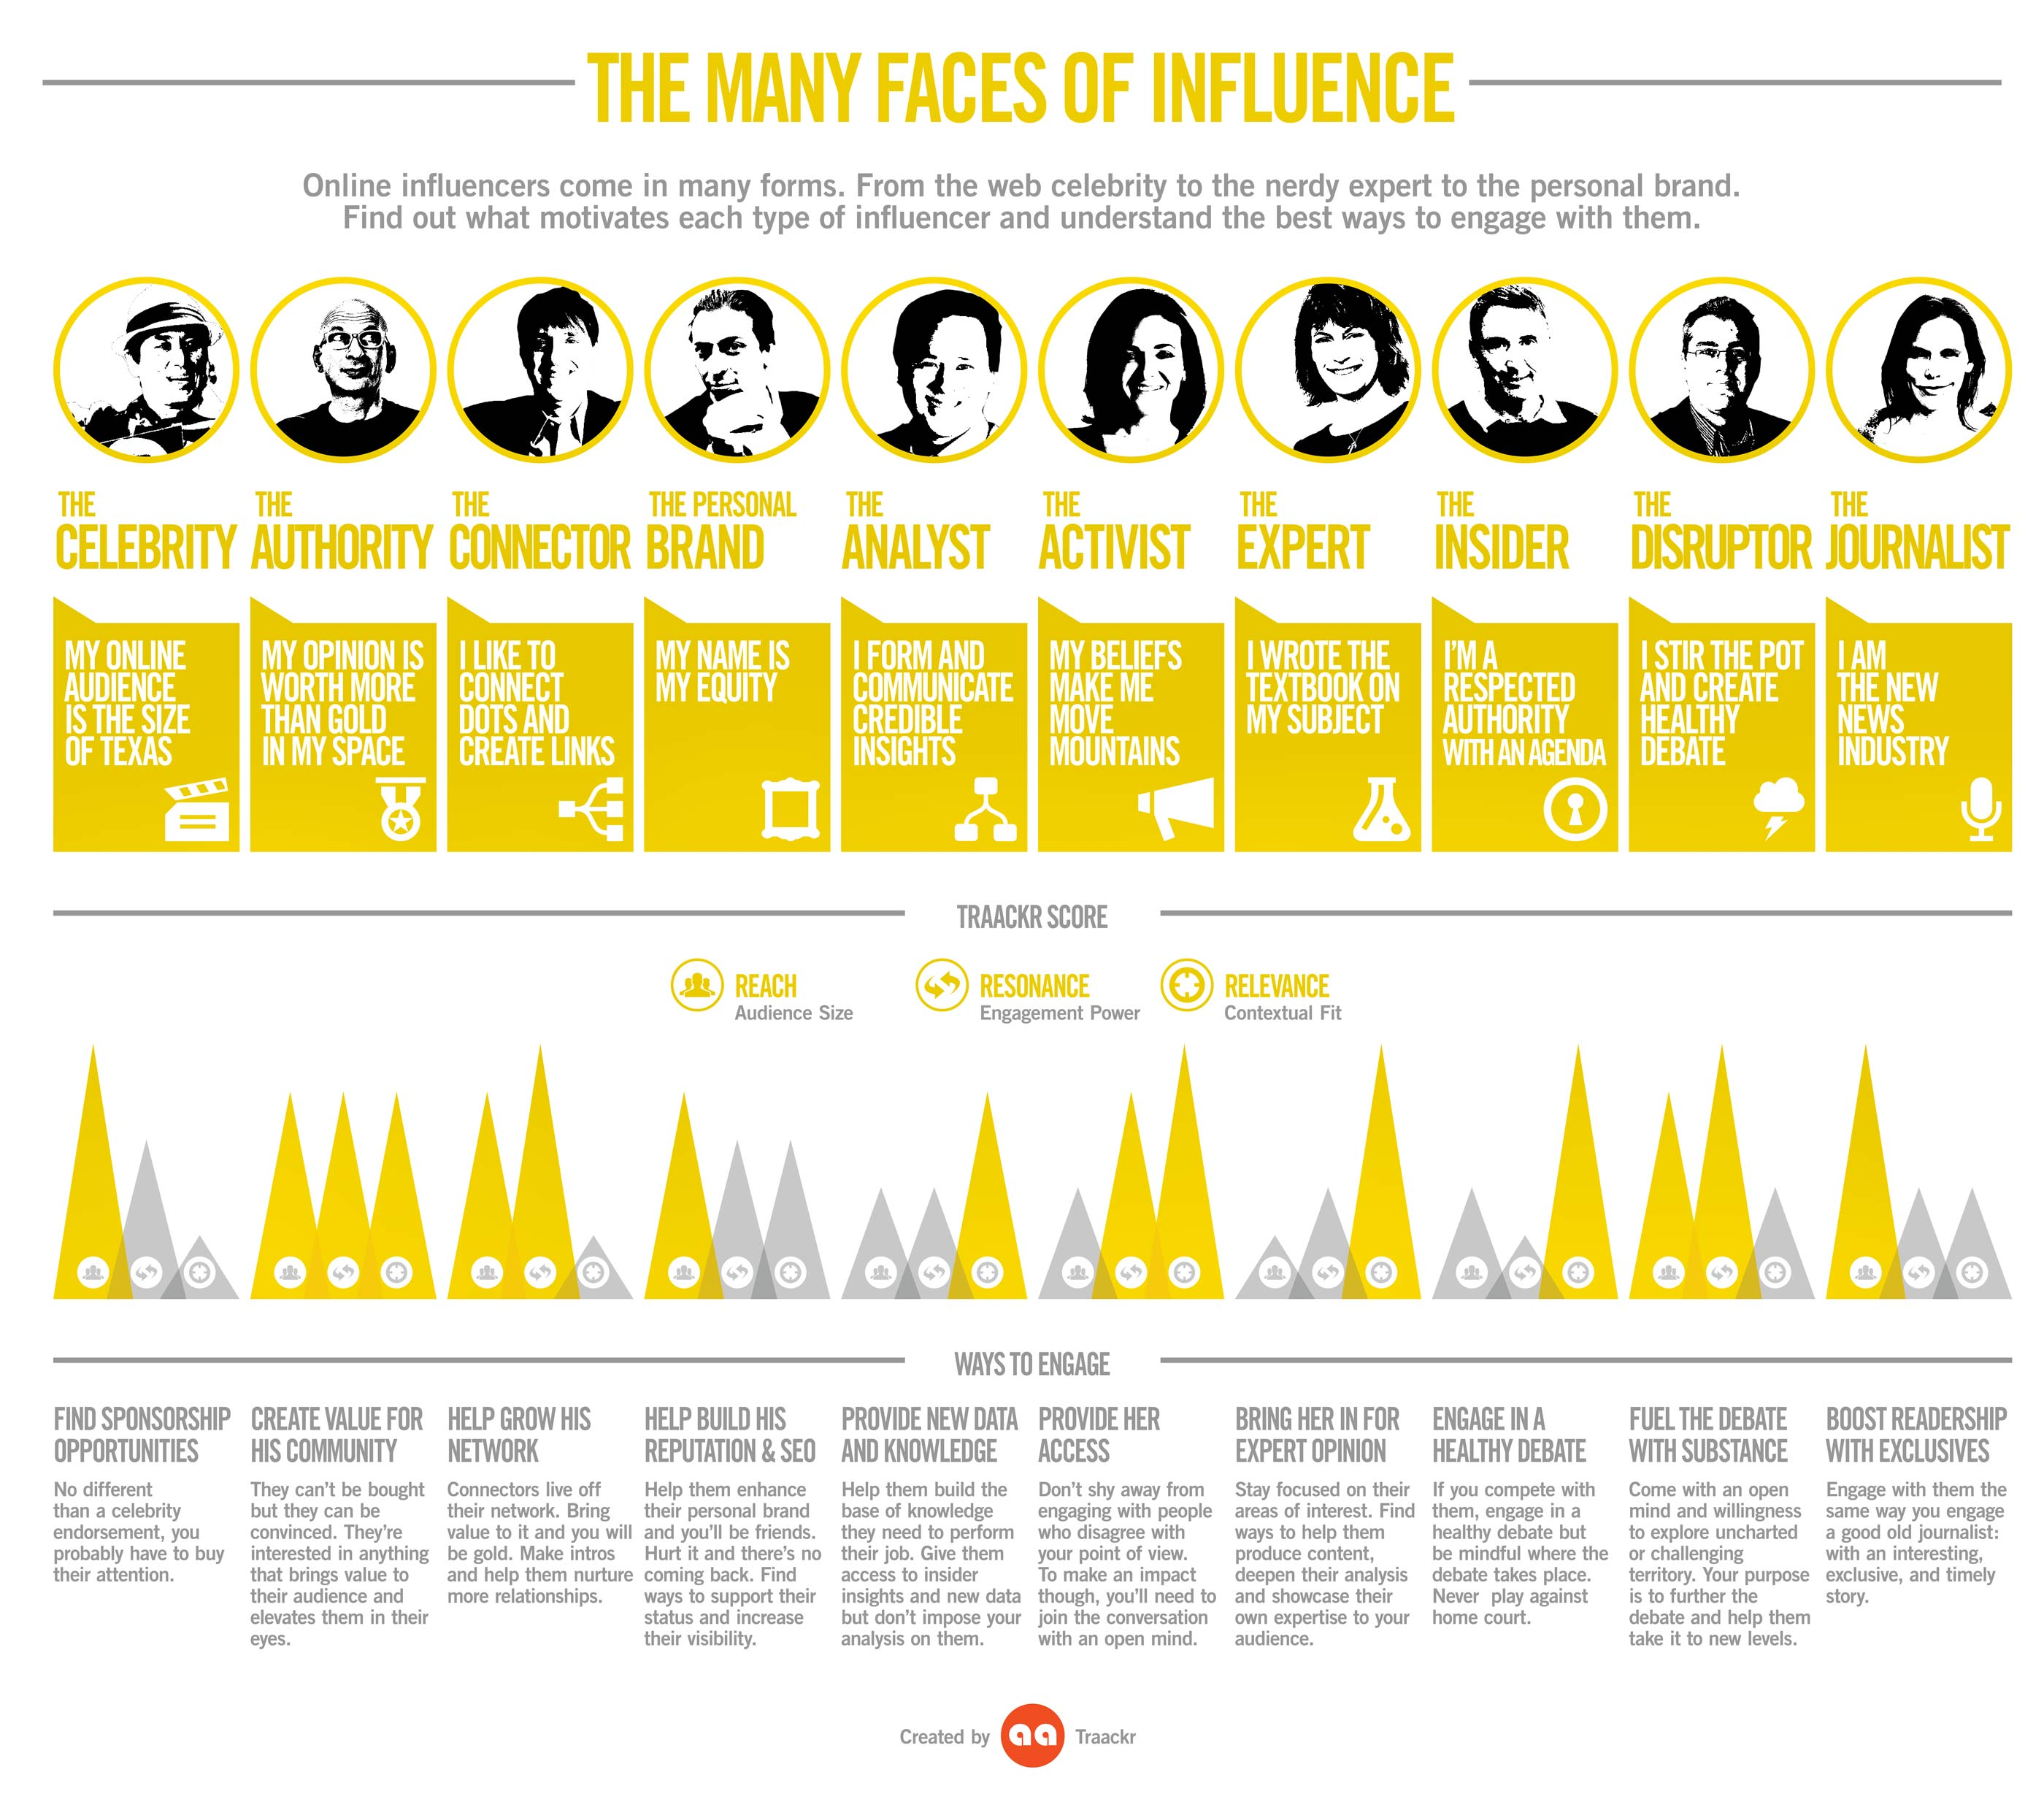 An Infographic of The Many Faces of Influence: 10 key influencer archetypes